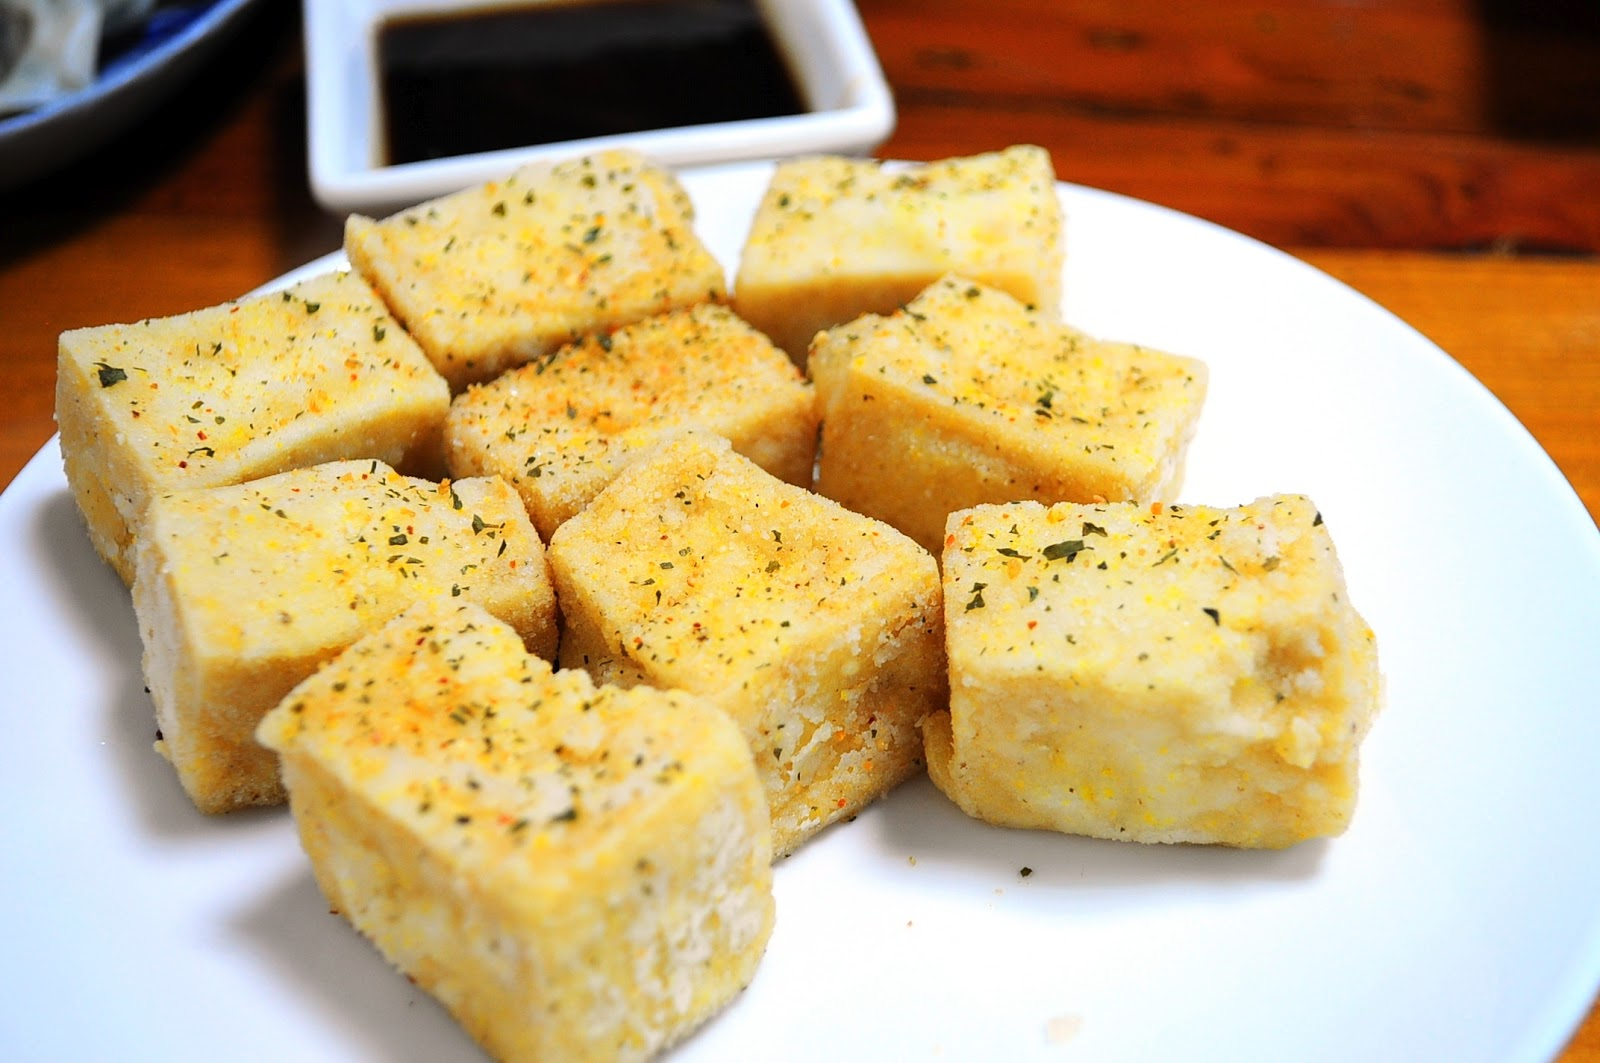 ... Fried Tofu - deep fried tofu squares in thin crisp coating with silky